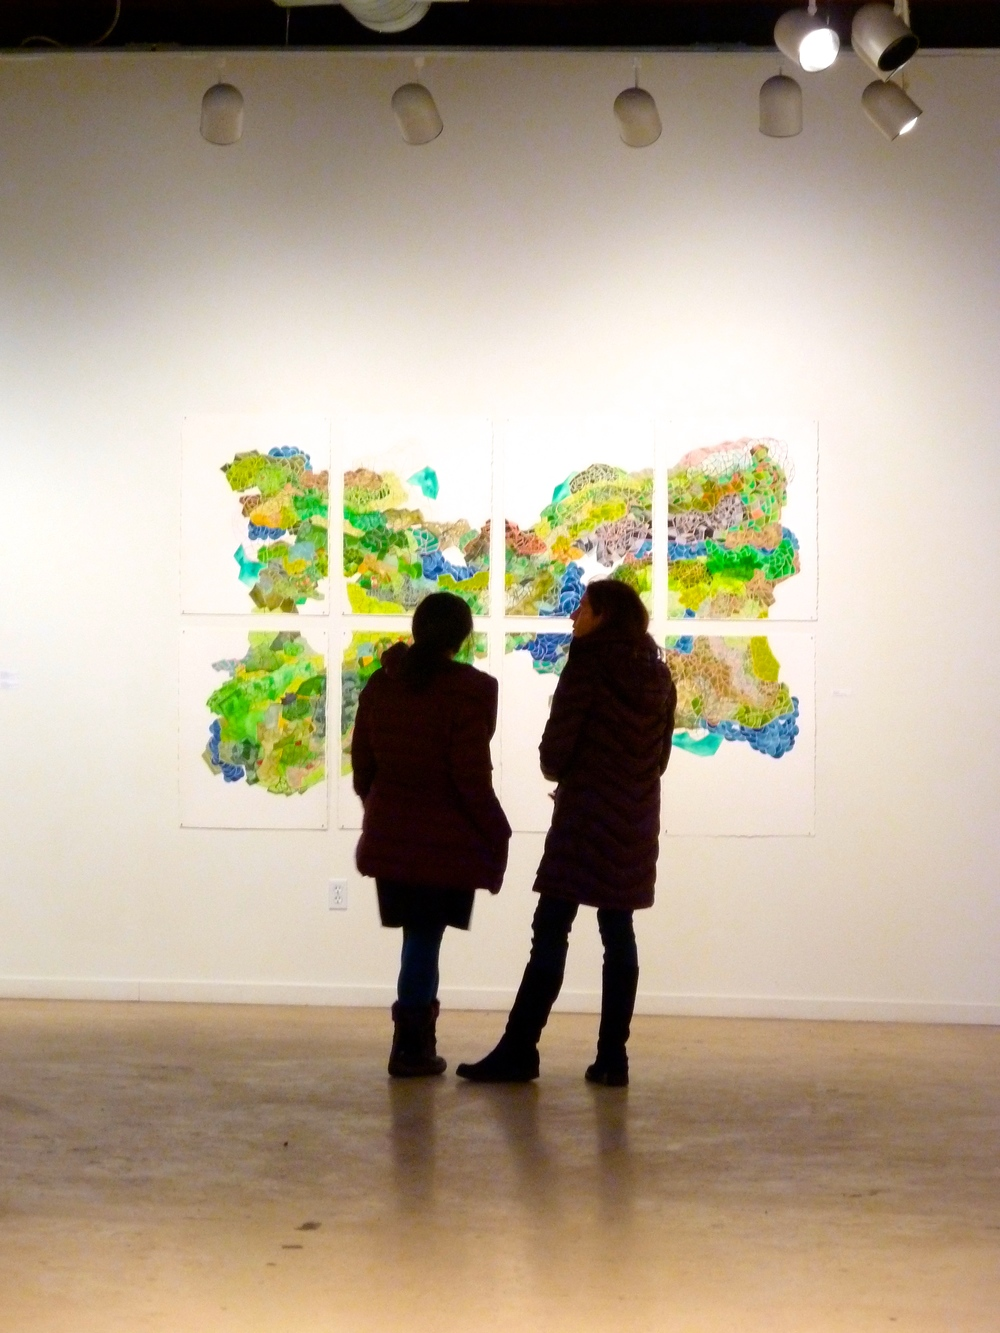 Installation view, Soo Visual Arts Center, Minneapolis, MN.